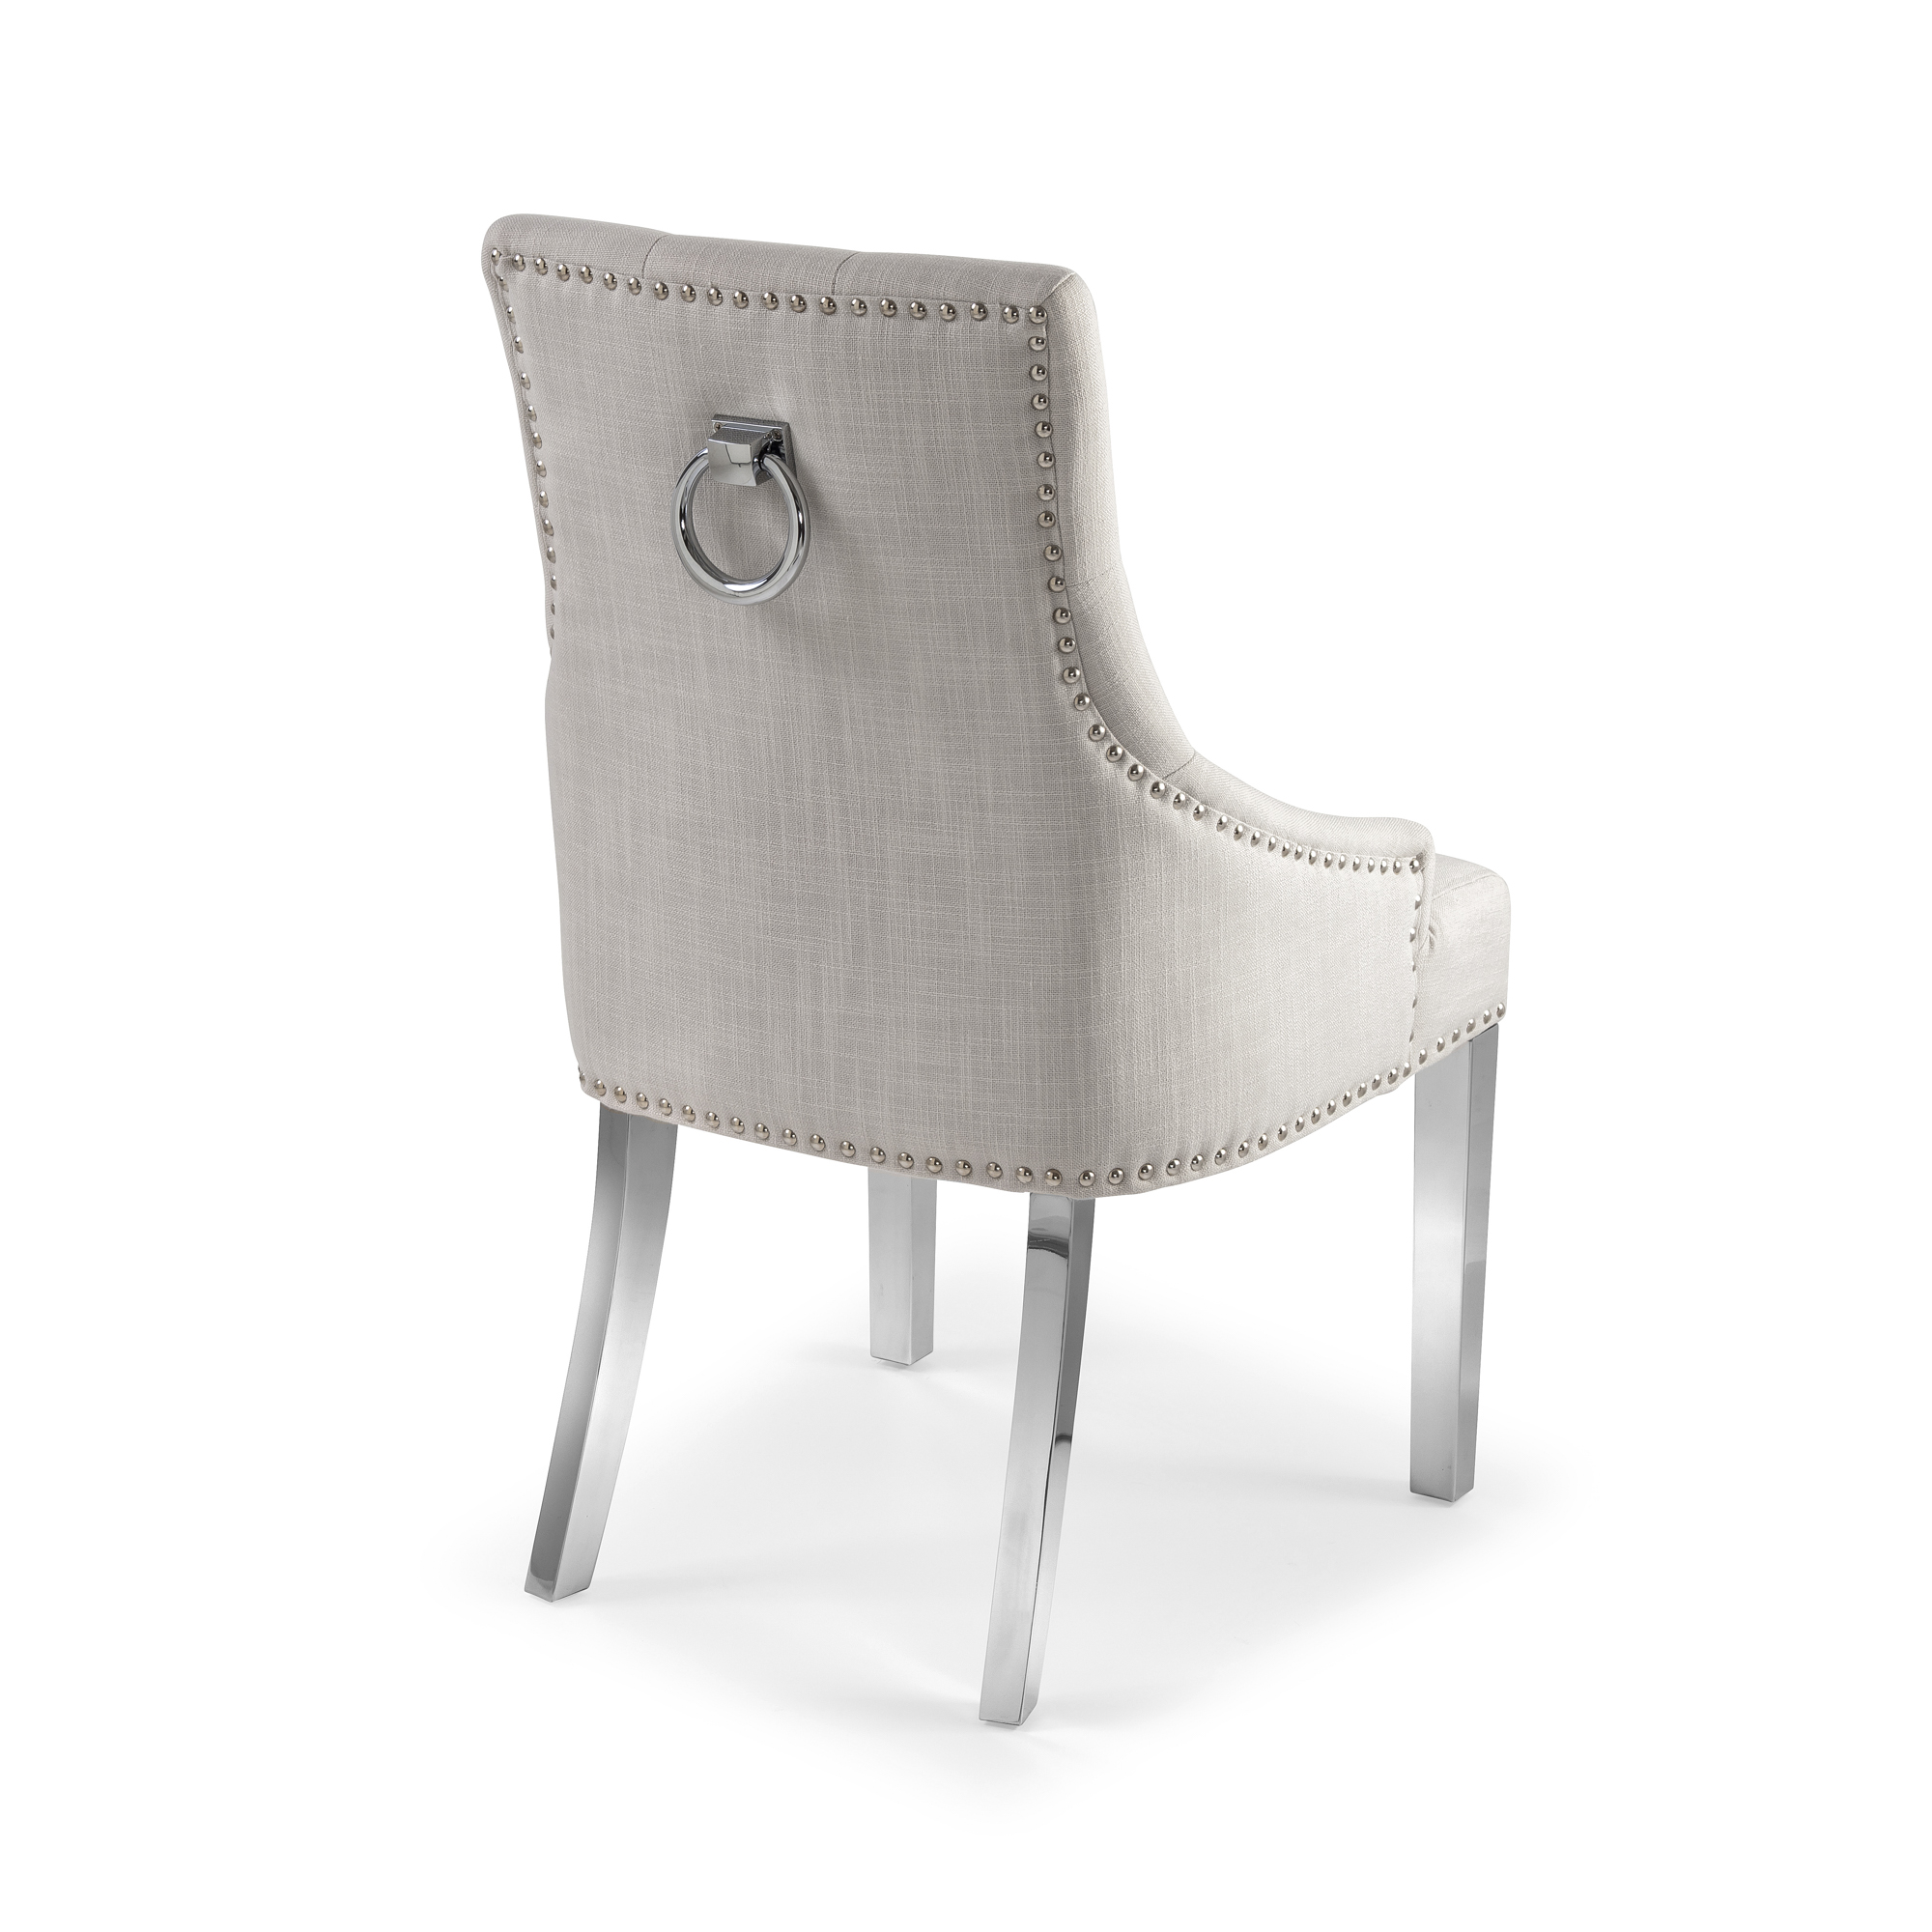 Chelsea Upholstered Scoop Dining Chair In A Natural Linen Fabric with Steel Legs